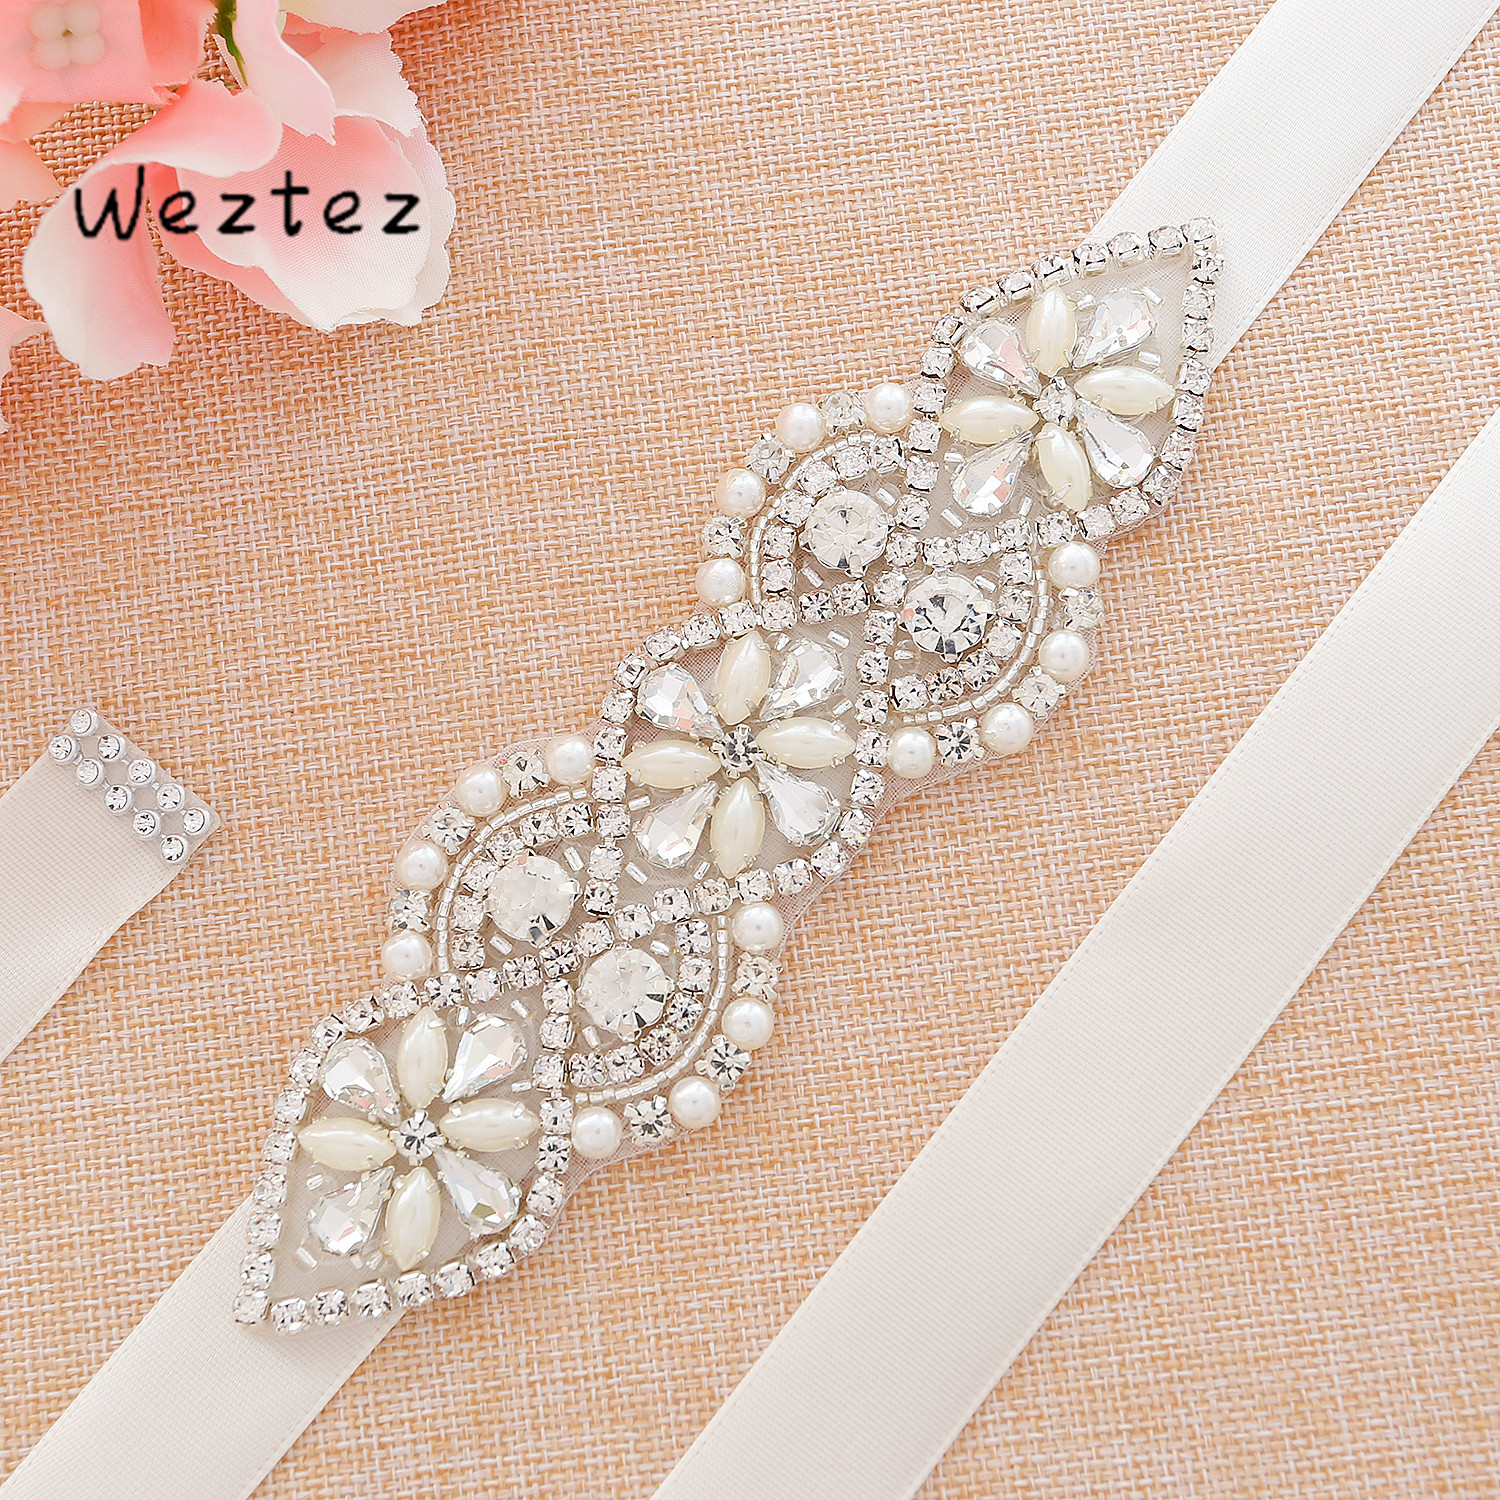 Silver Crystal Wedding Belt Rhinestones Bridal Belt Pearls Wedding Sash For Bridal Bridesmaid Dresses SD112S